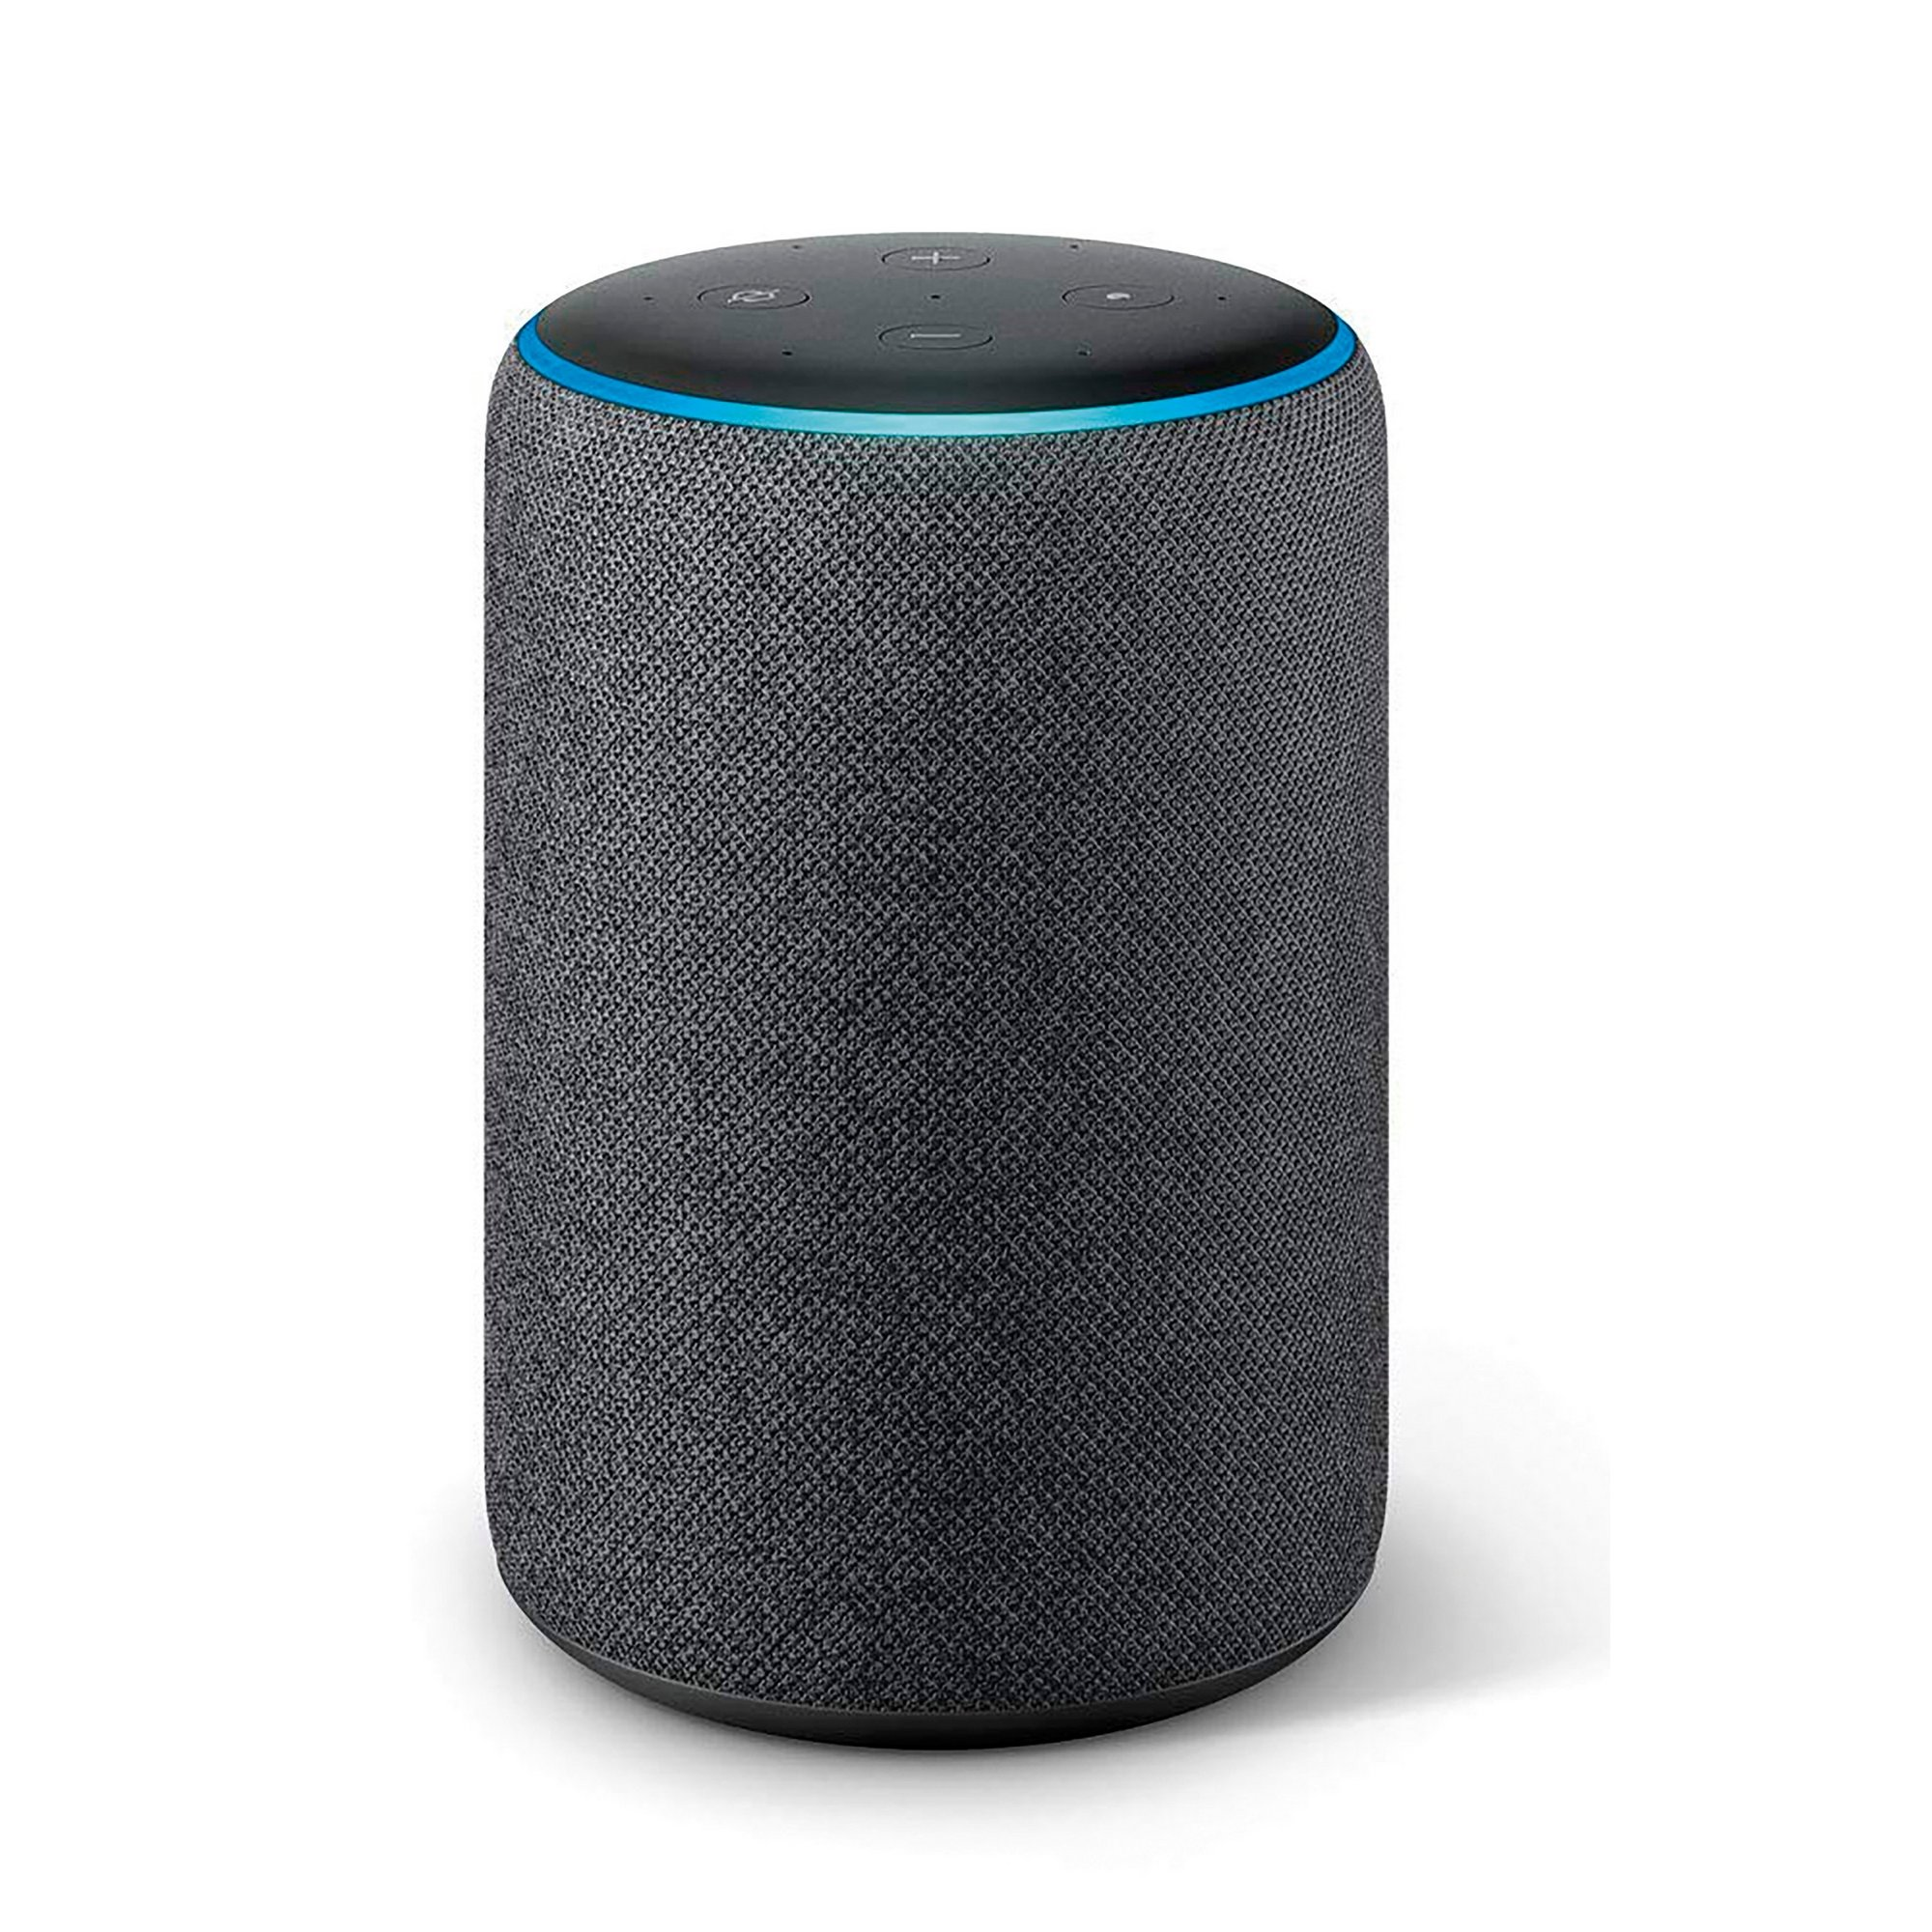 Image of Amazon Echo Plus (2nd Gen)